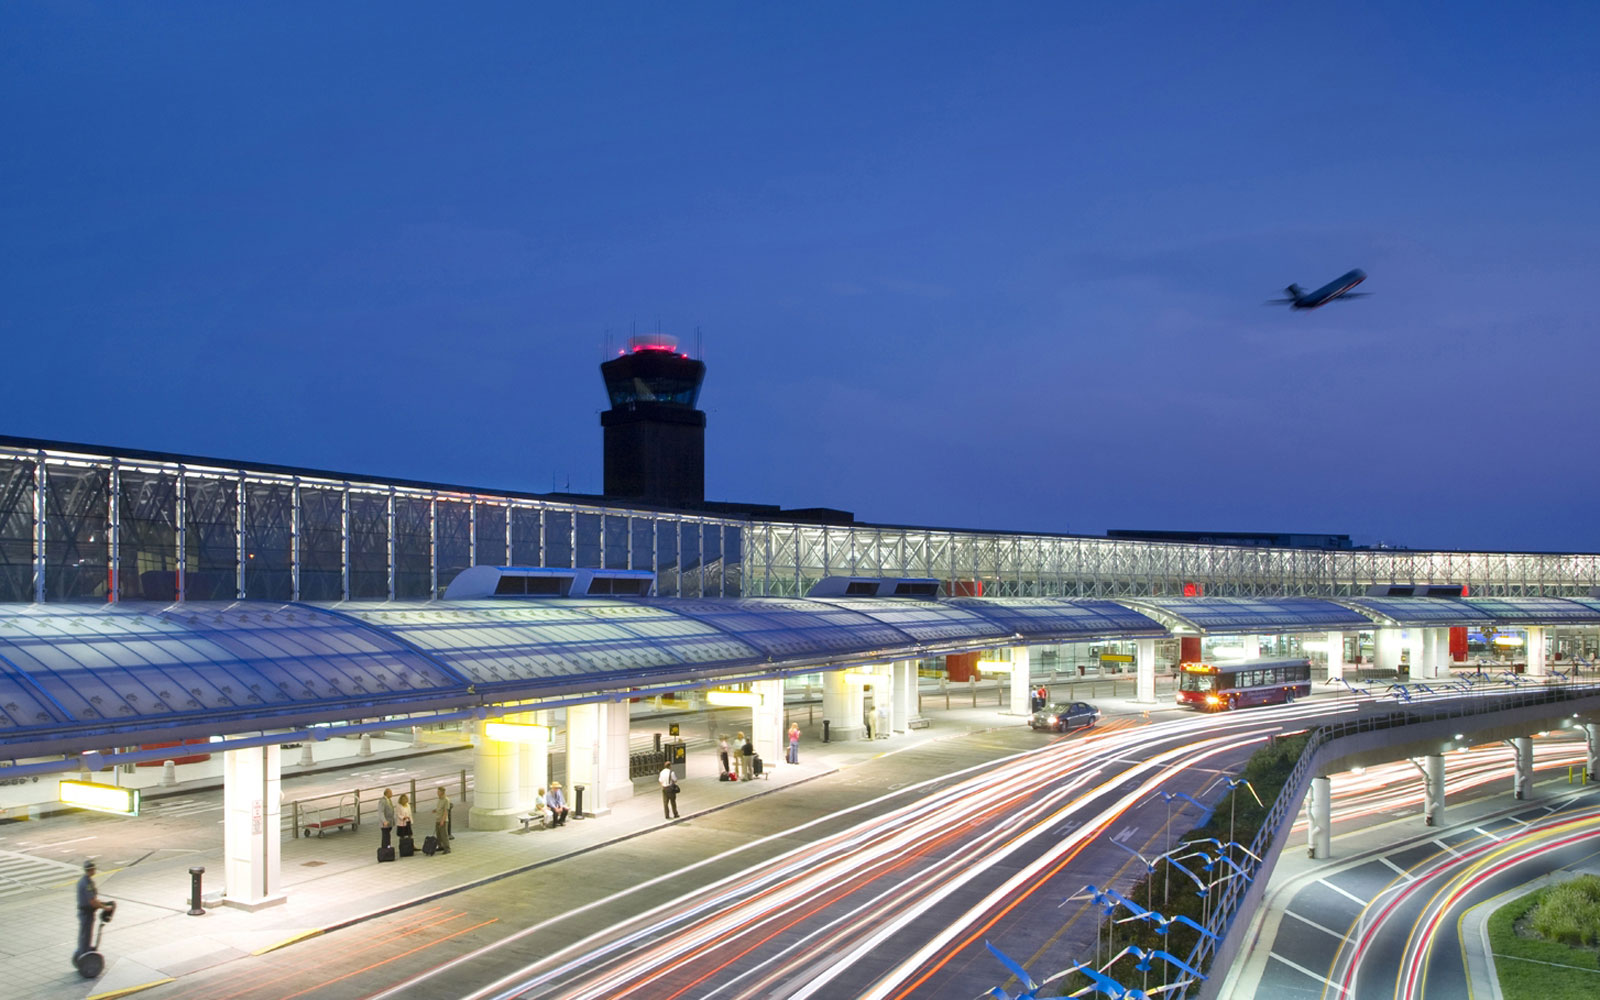 America's best and worst airports: Baltimore (BWI)